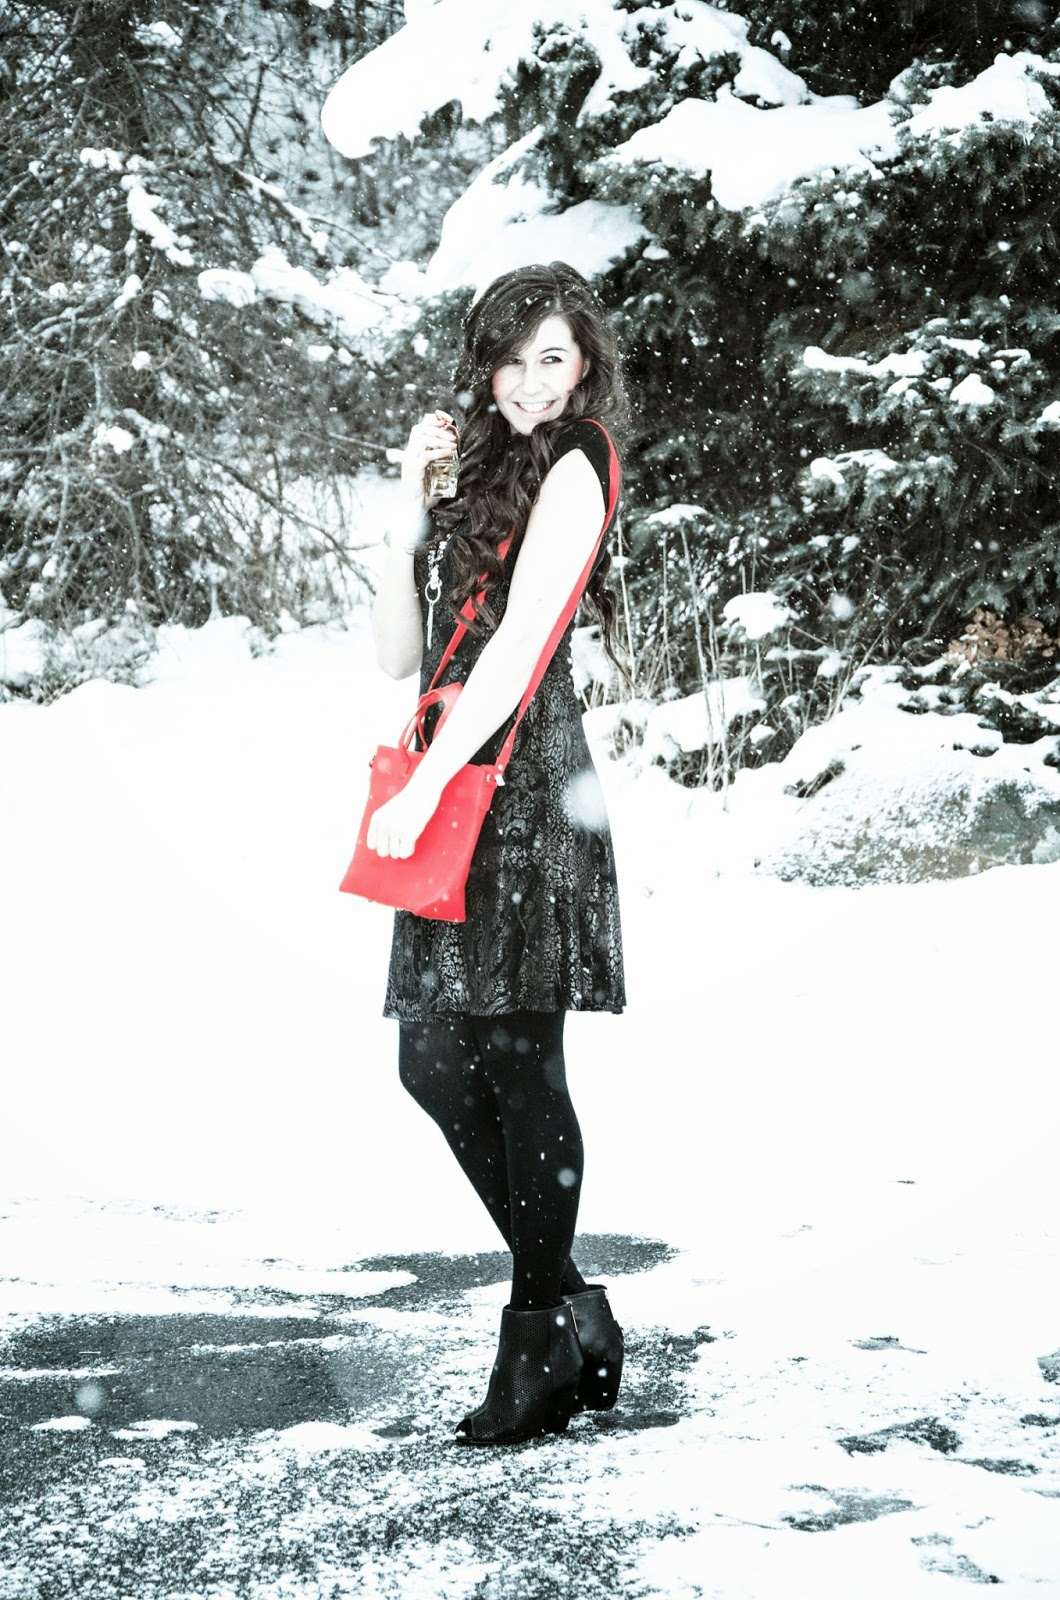 holiday party outfit ideas, holiday outfit ideas, holiday outfits, upcoming party outfit ideas, dresses for the holidays, skirts, skater skirt outfits, pretty outfits,